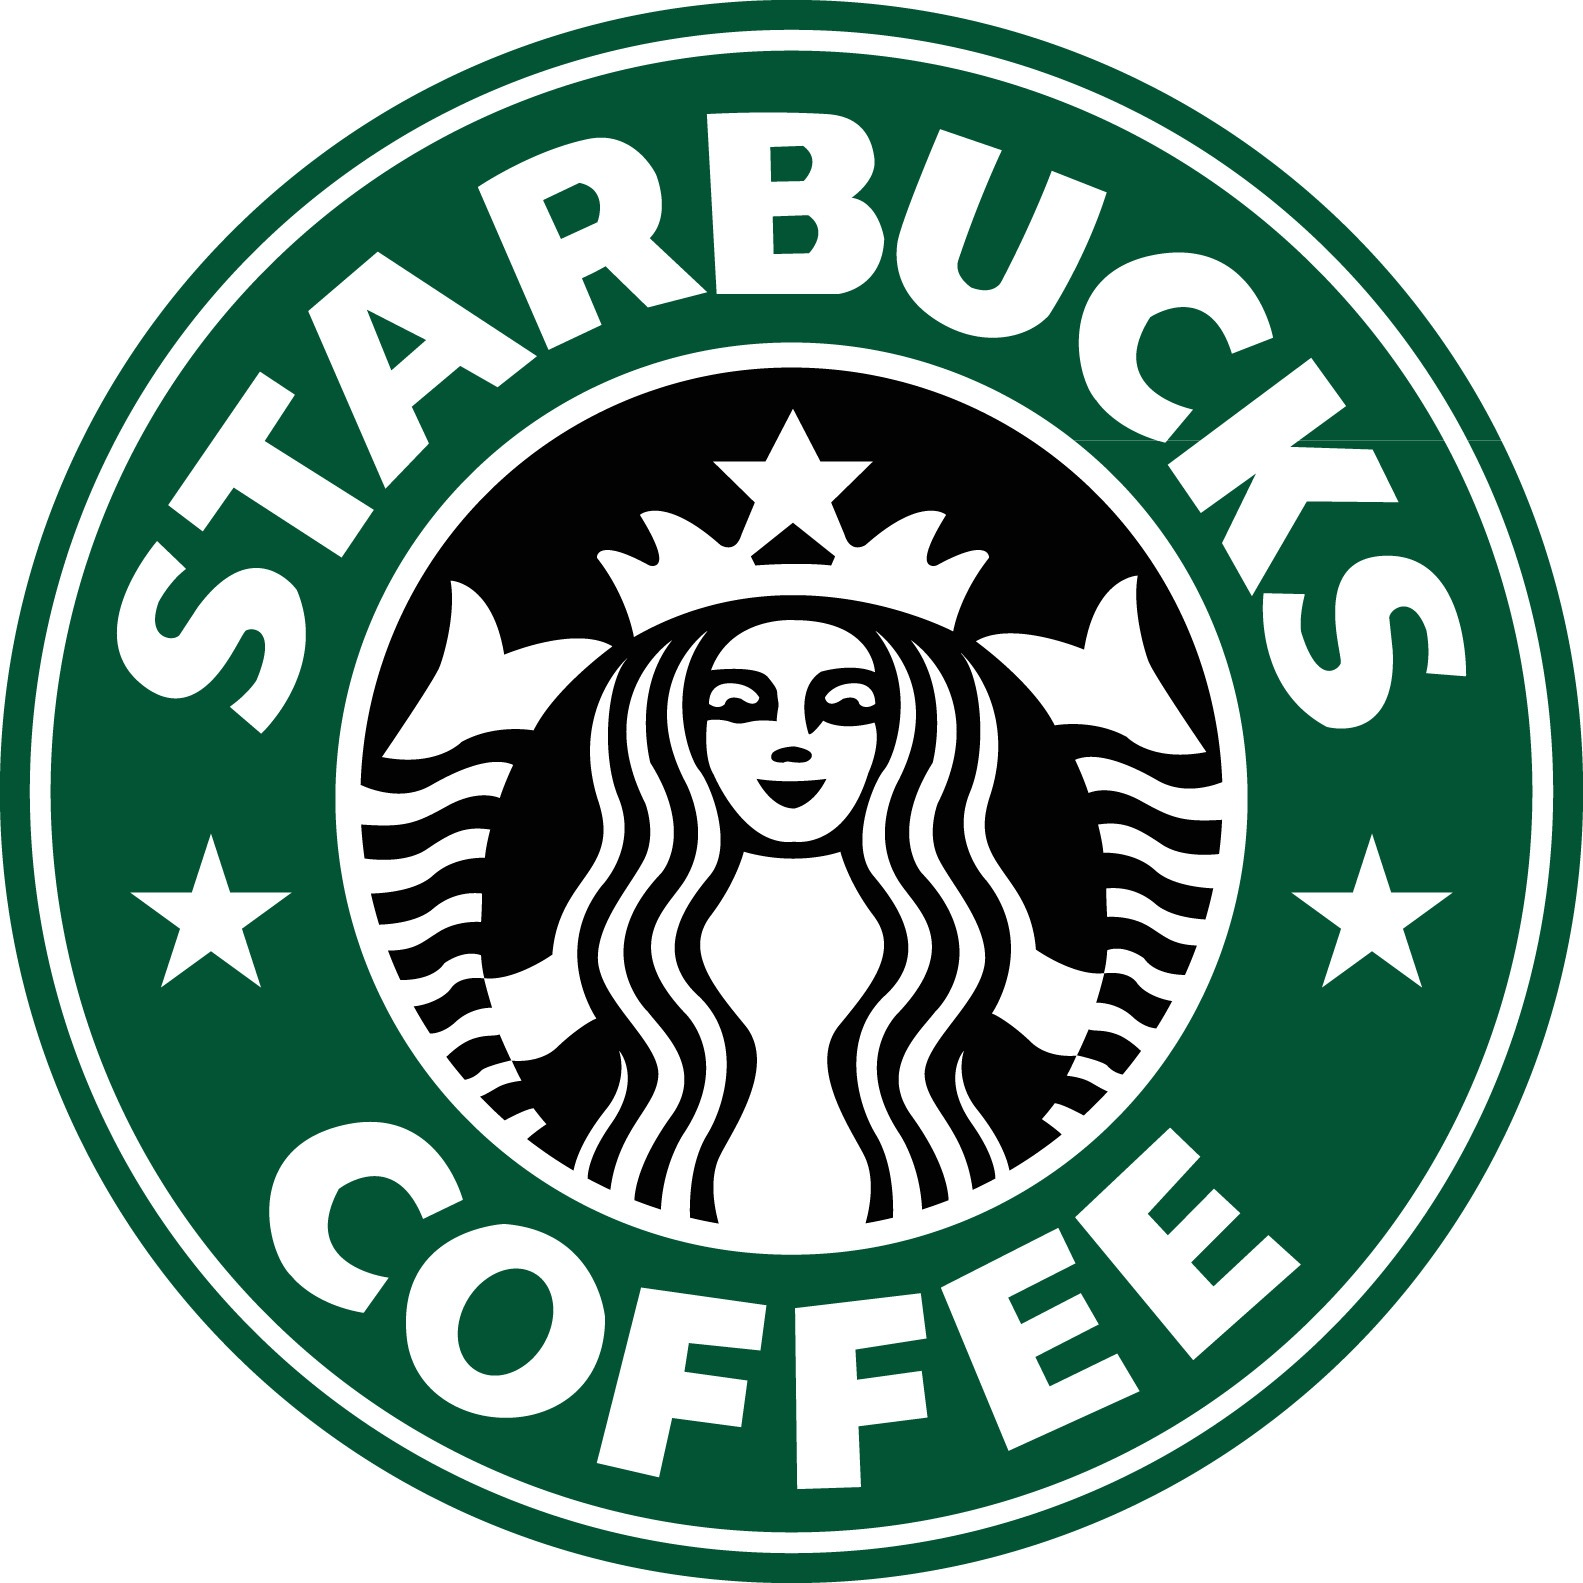 STARBUCKS MAR SHOPPING ALGARVE